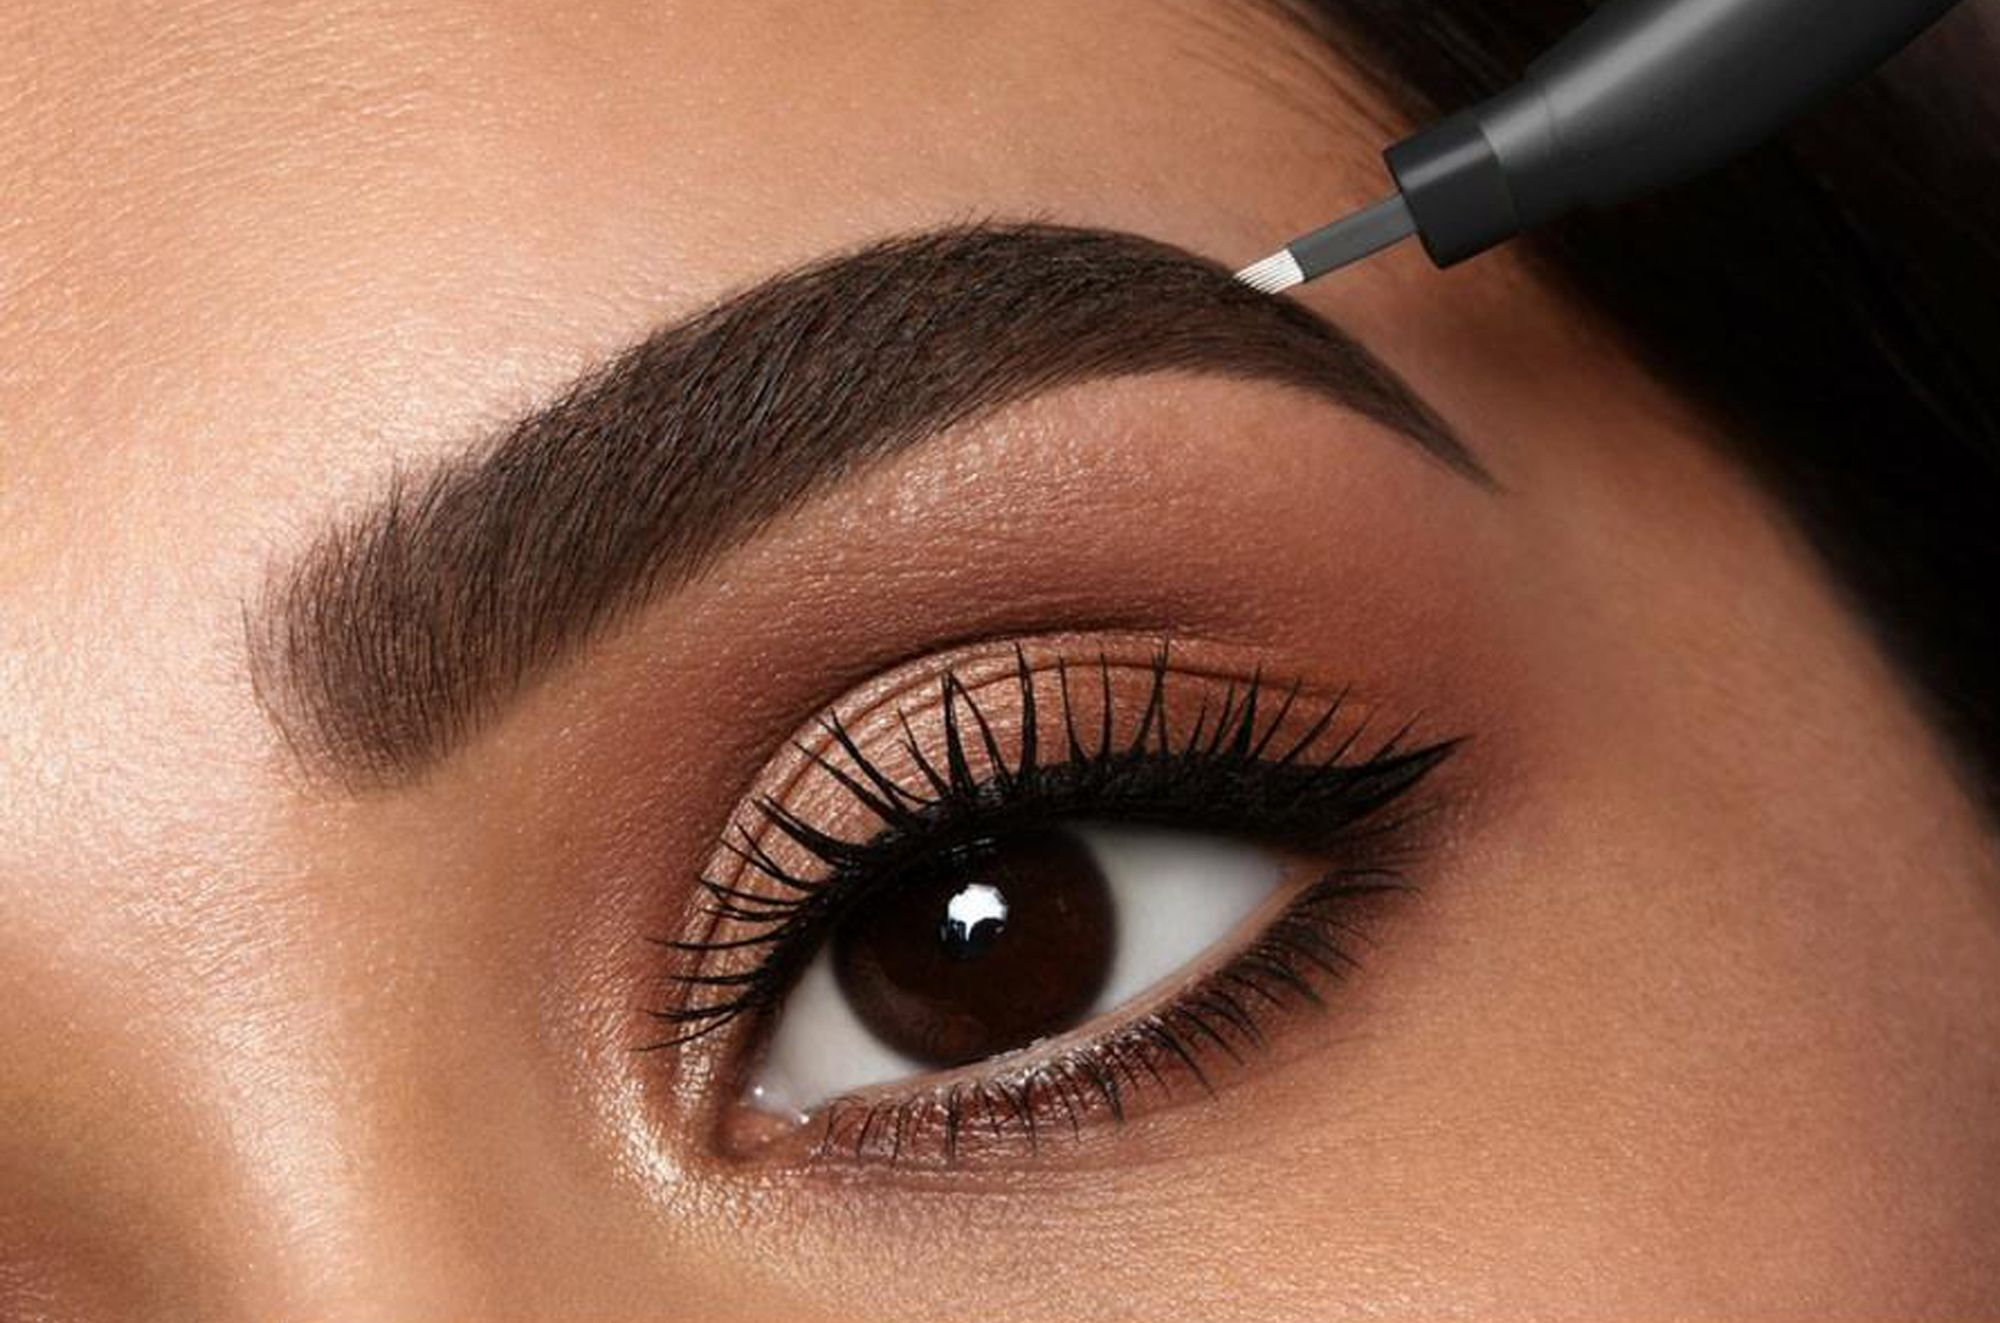 Pin by Cassidy Evans on brows Microblading eyebrows